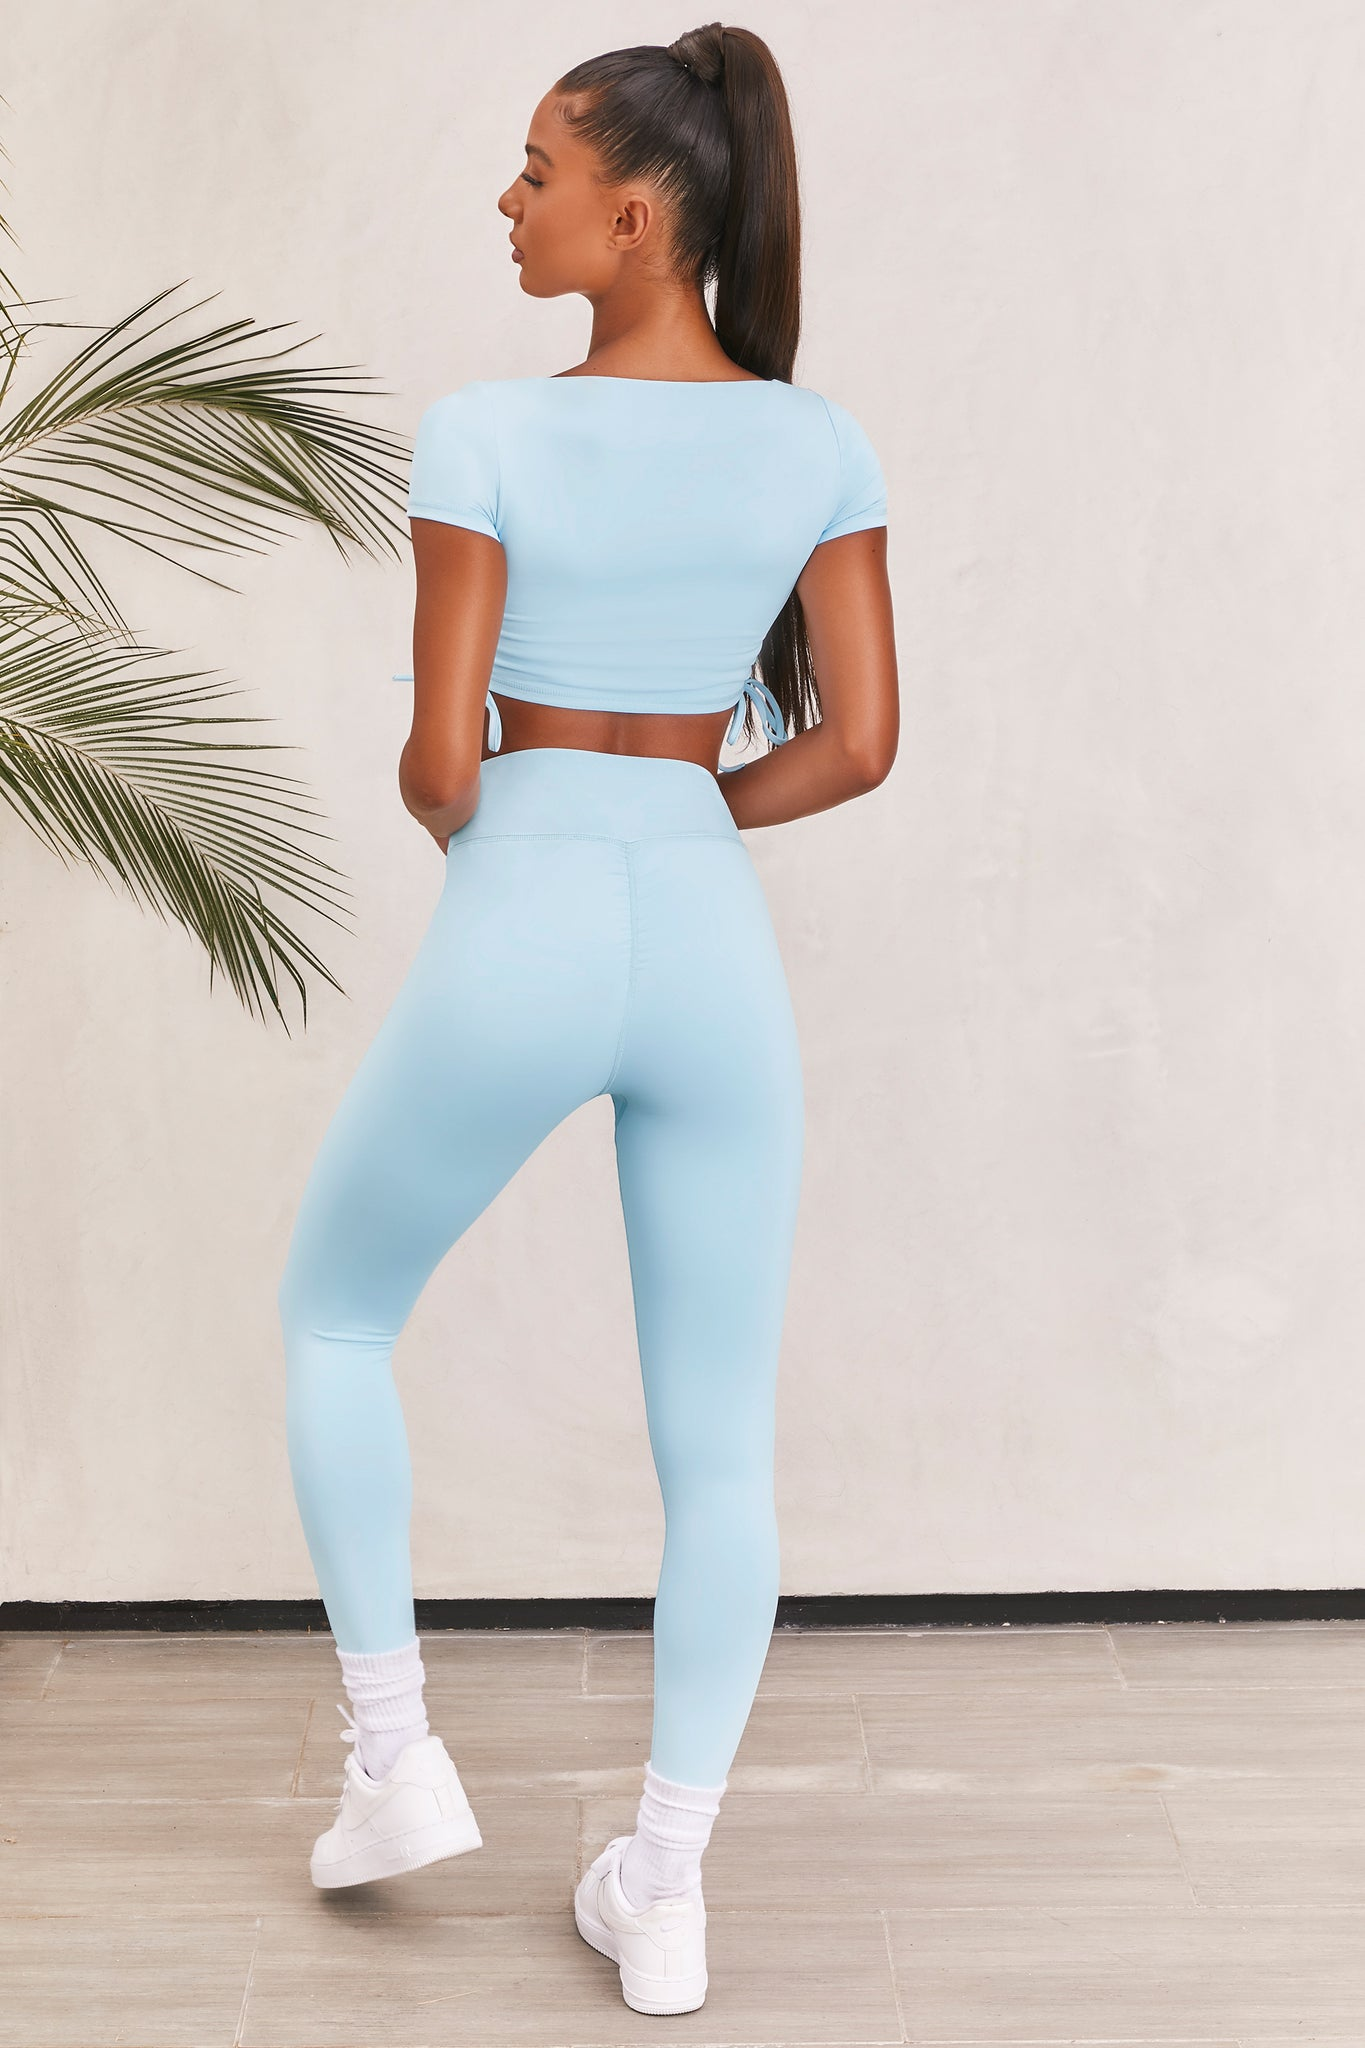 Plain ice blue slinky high waisted full length gym leggings with rear ruched seam. Image 3 of 6.